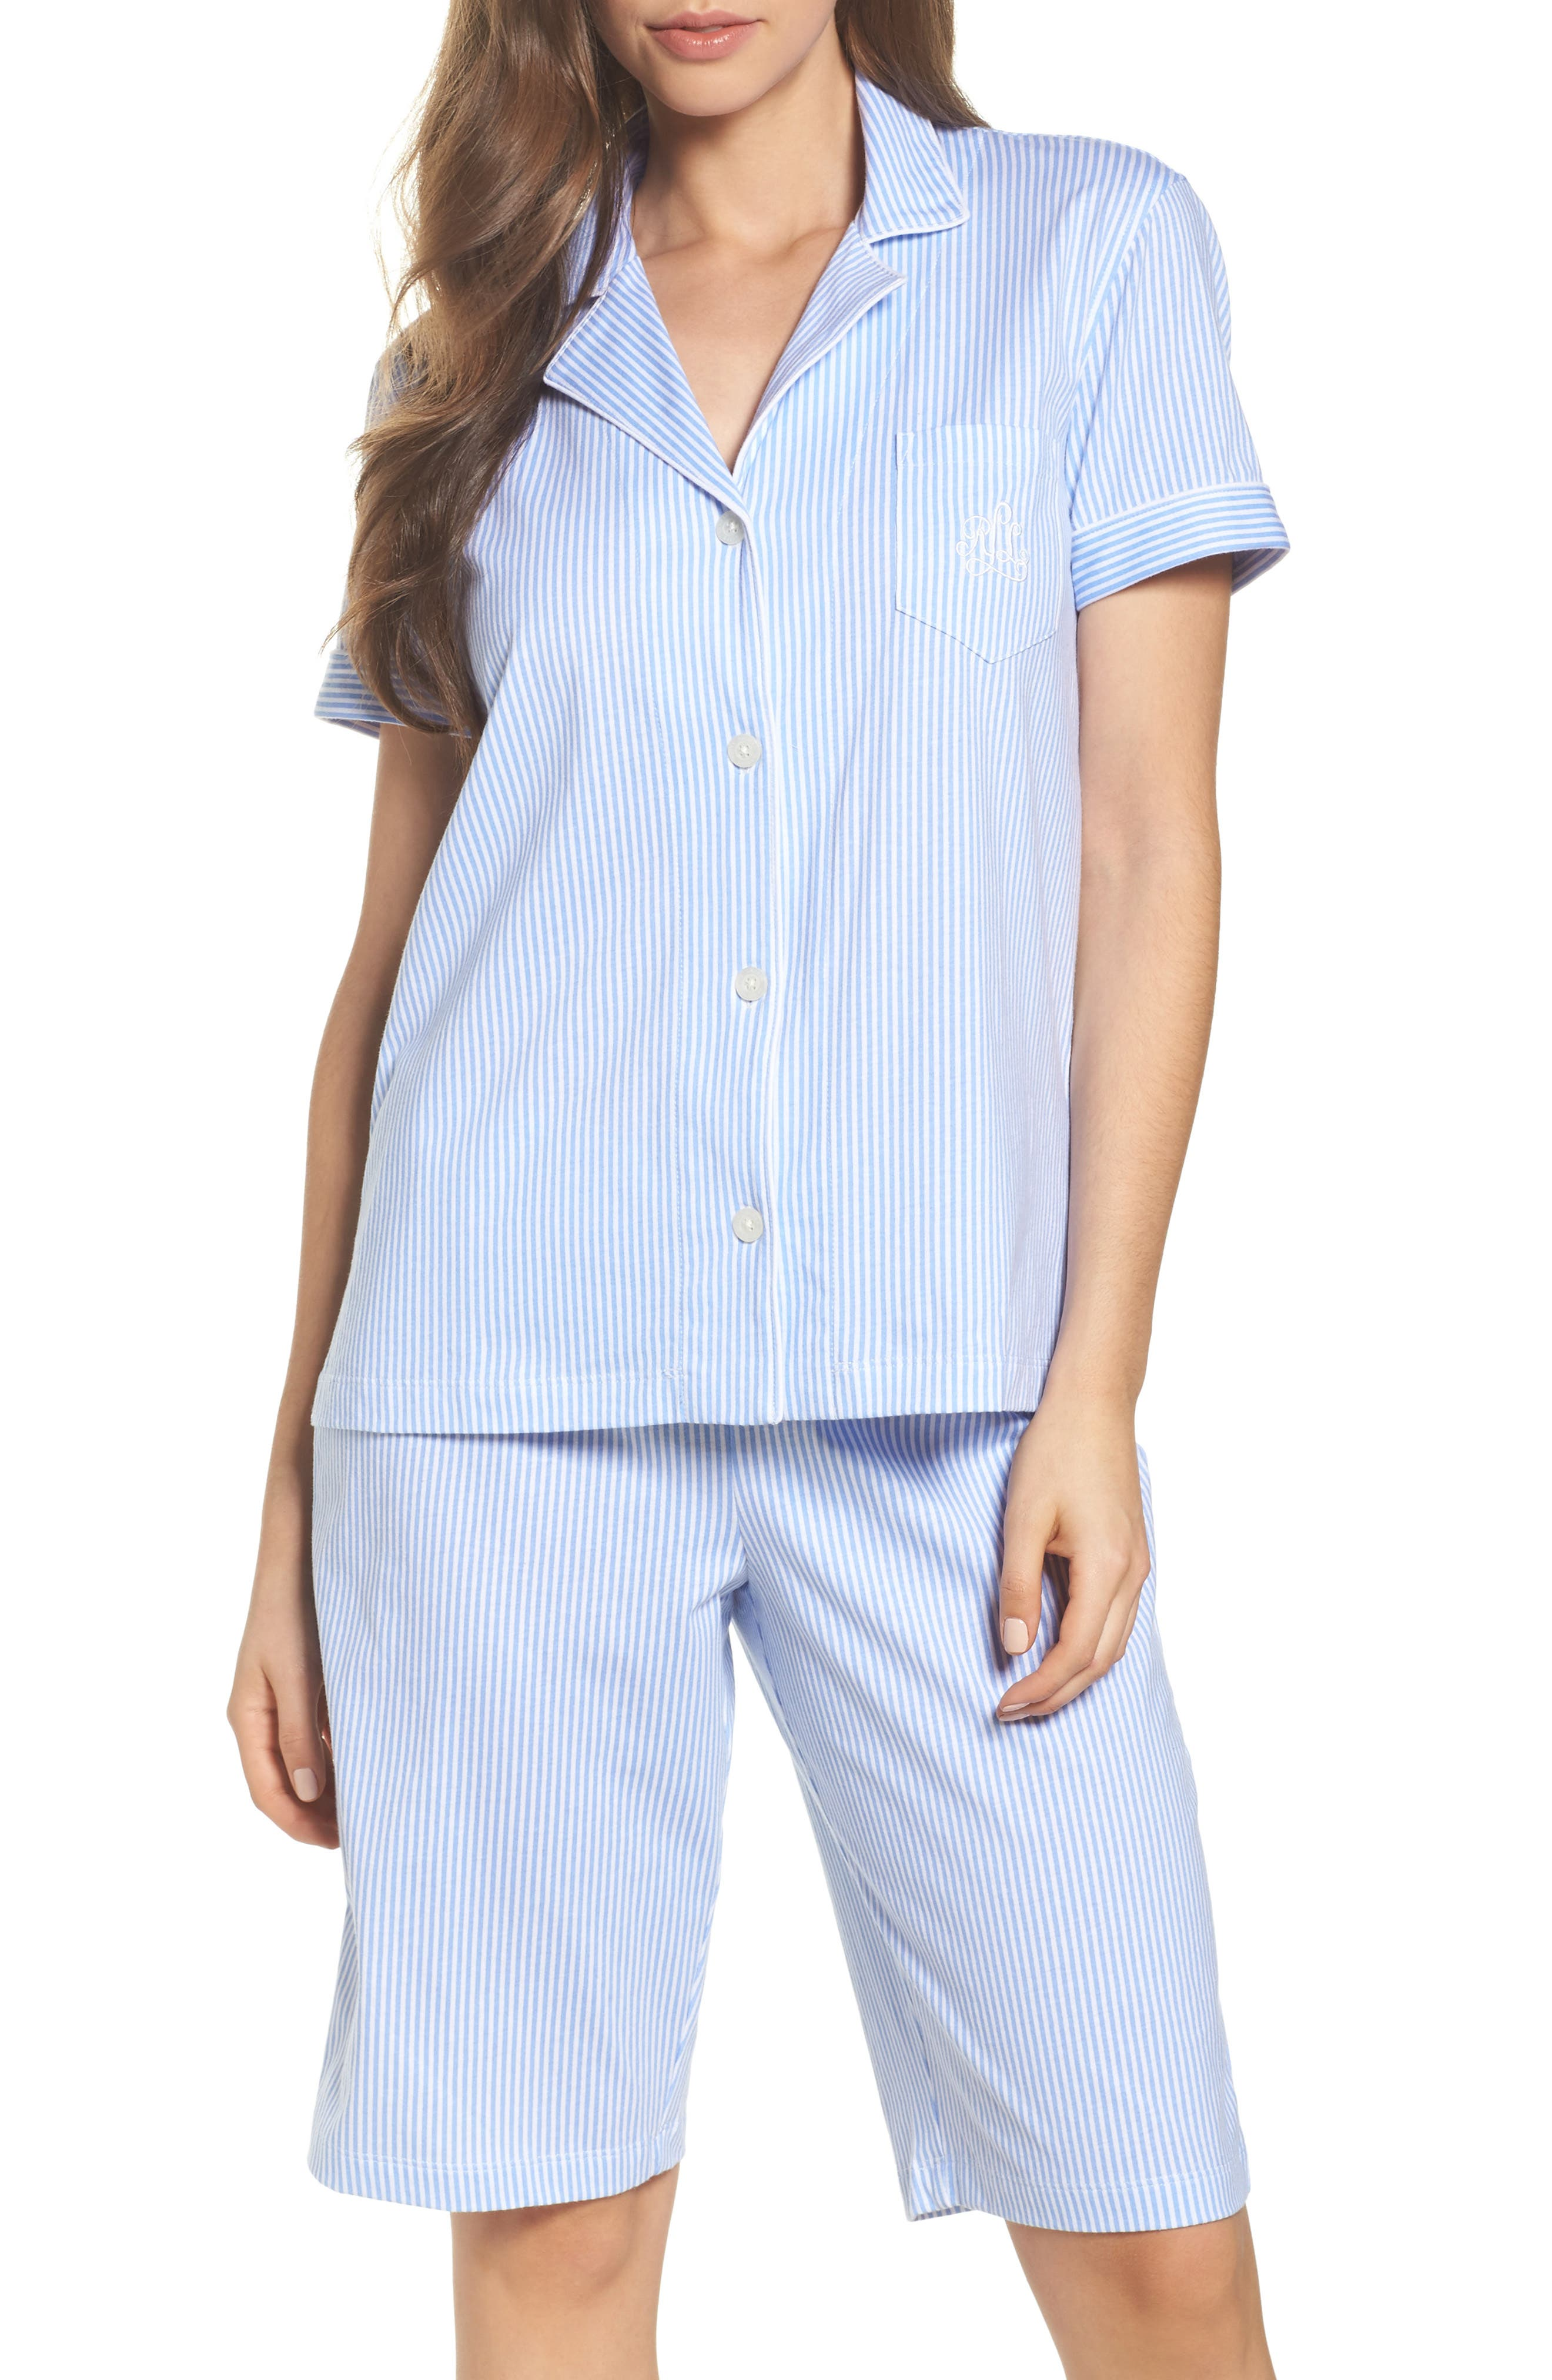 Bermuda Pajamas,                         Main,                         color, Feather Blue Stripe